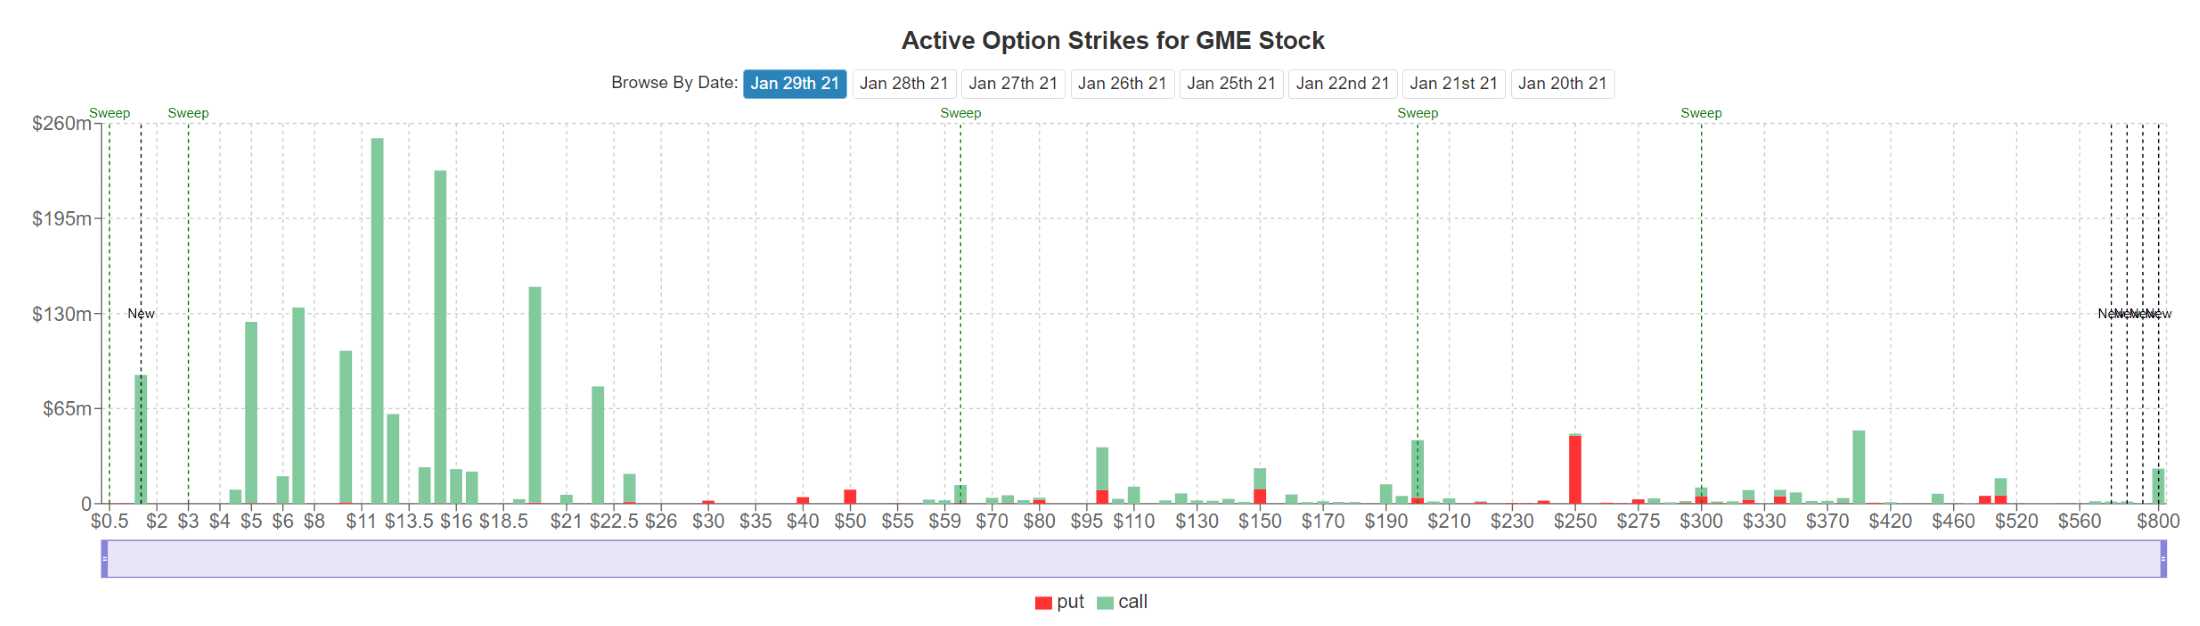 Active option strikes for Gamespot stock